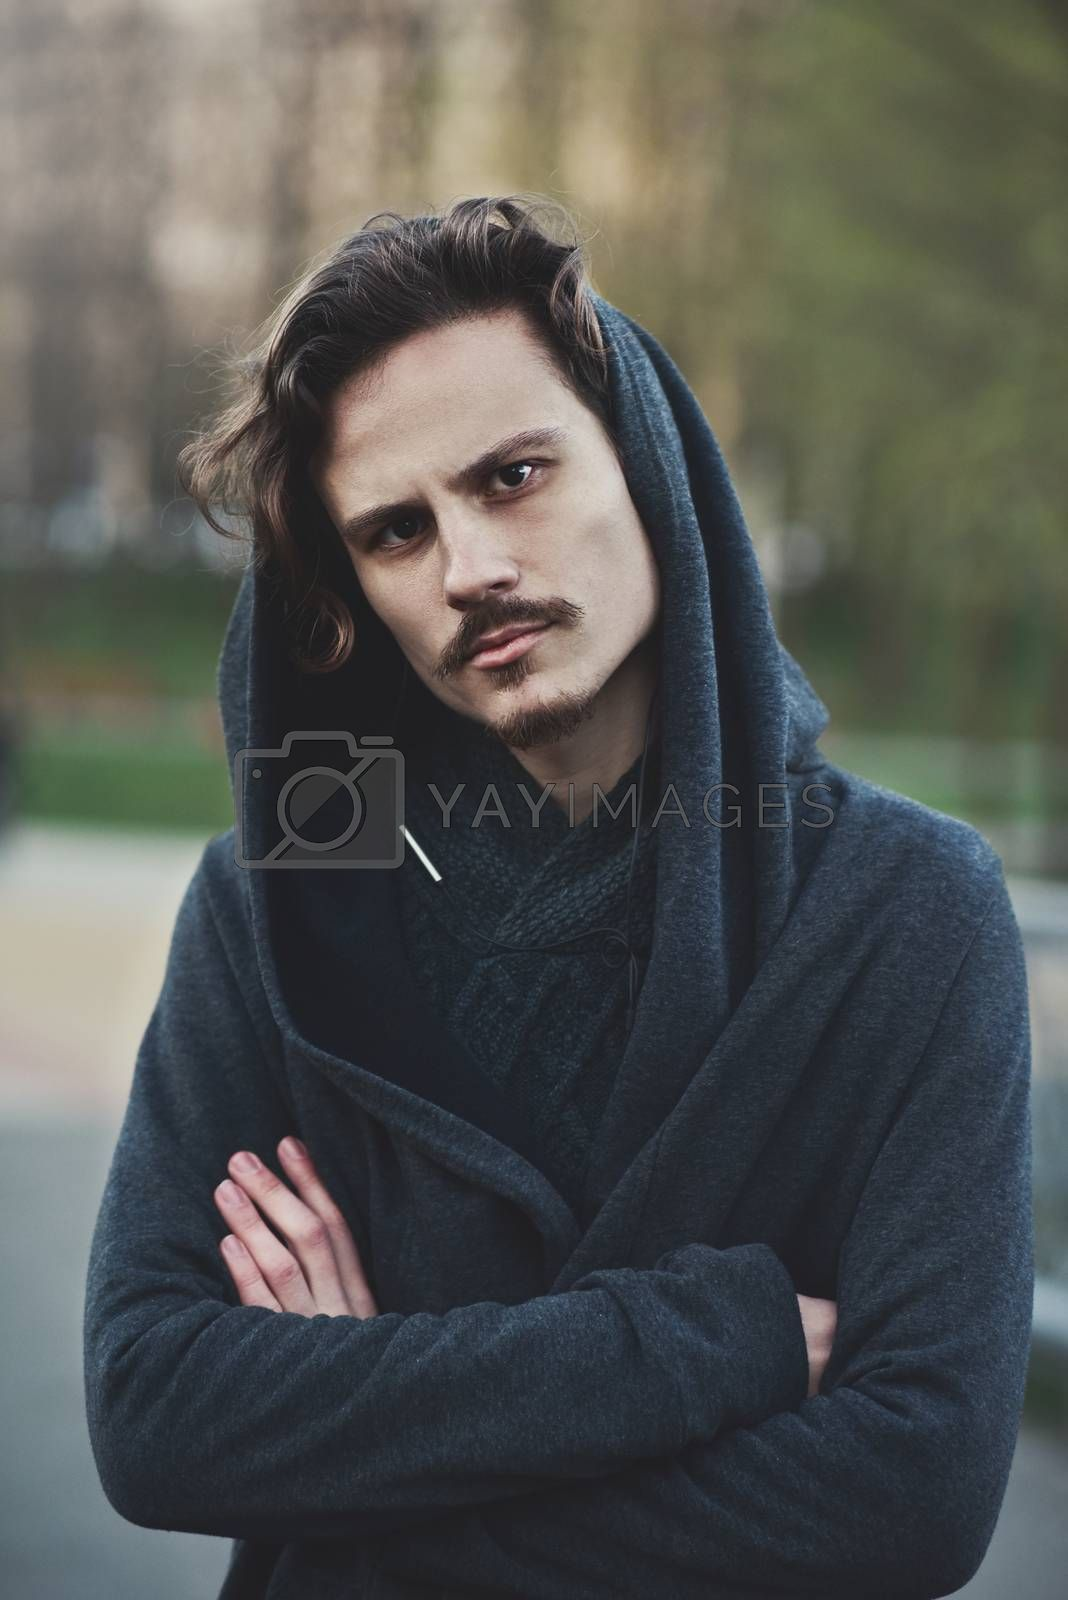 Royalty free image of Handsome young hooded man looks on something with suspicion by Nickstock